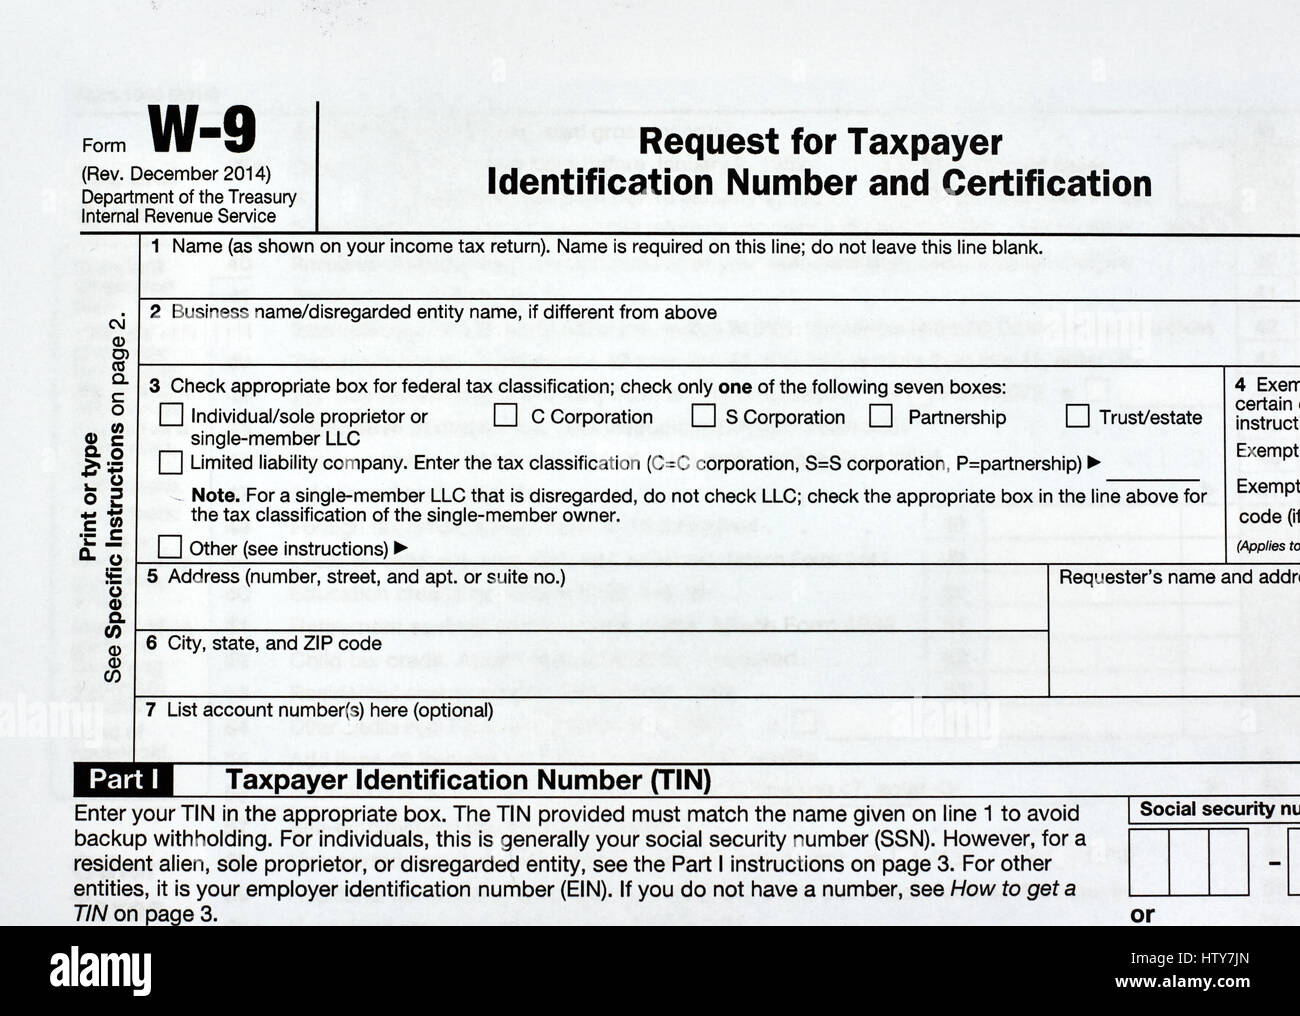 fastrak invoice number  W-7 USA federal tax form Stock Photo: 7 - Alamy